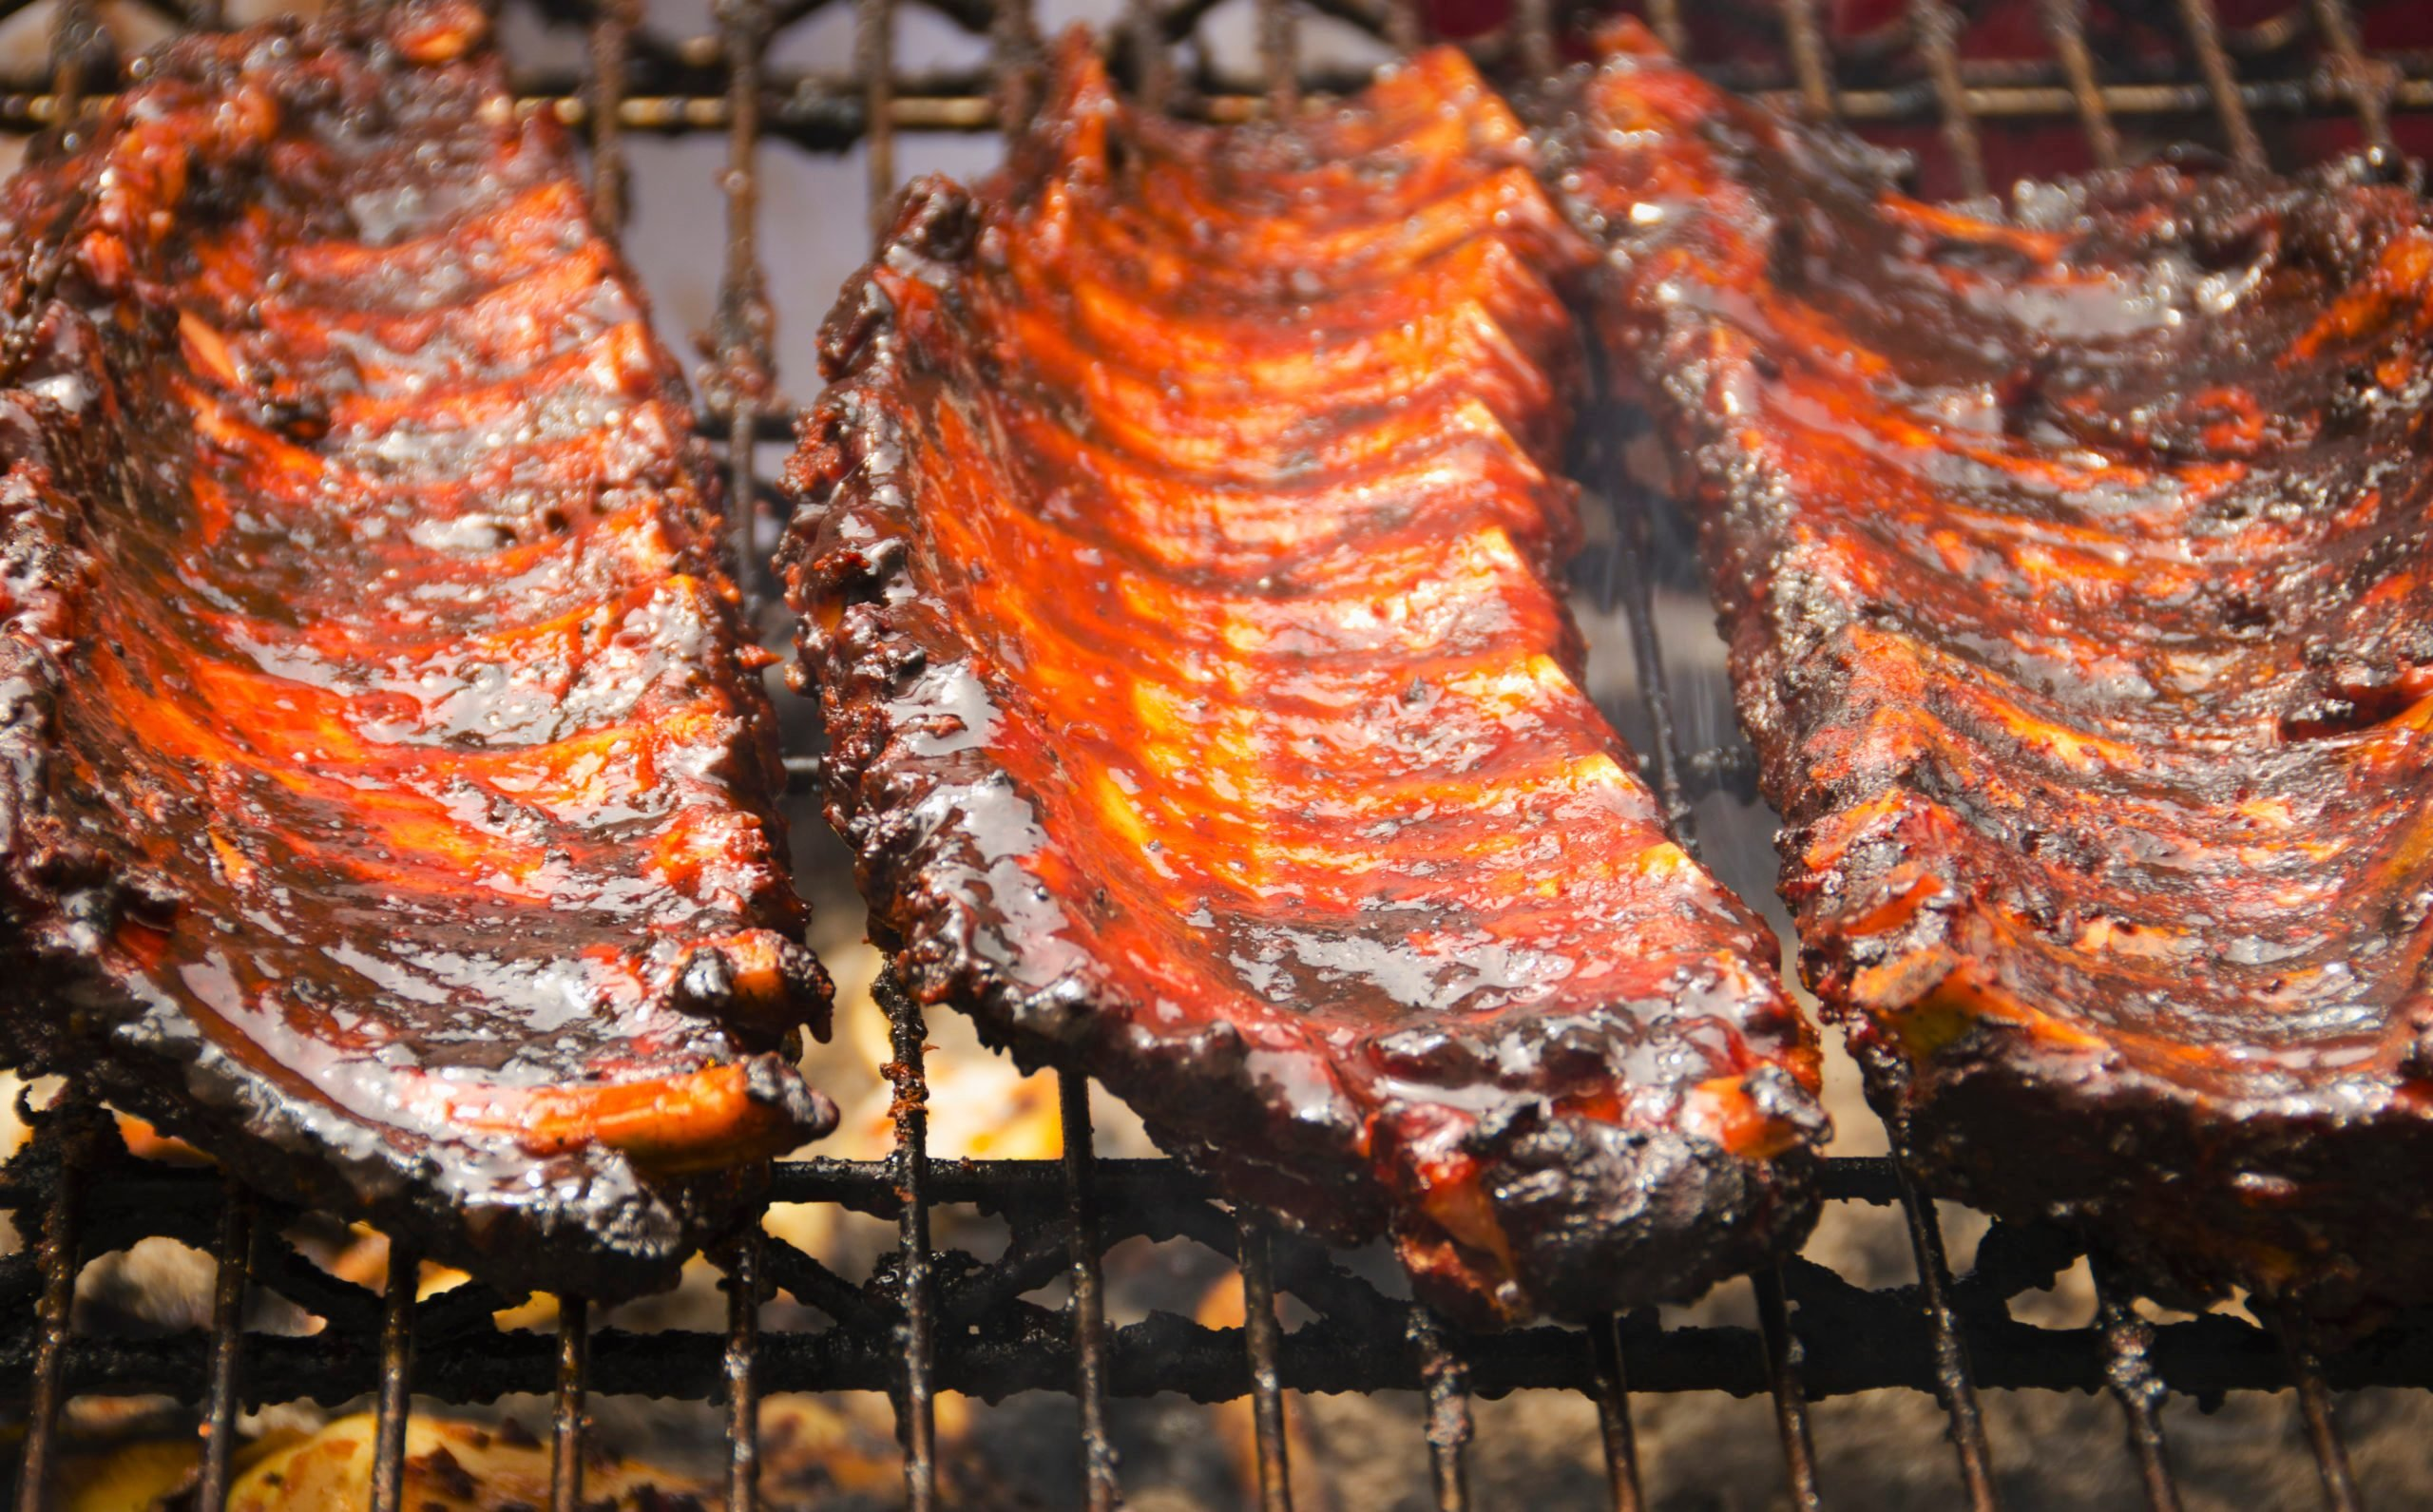 USA, New York, New York City, Spareribs on barbeque